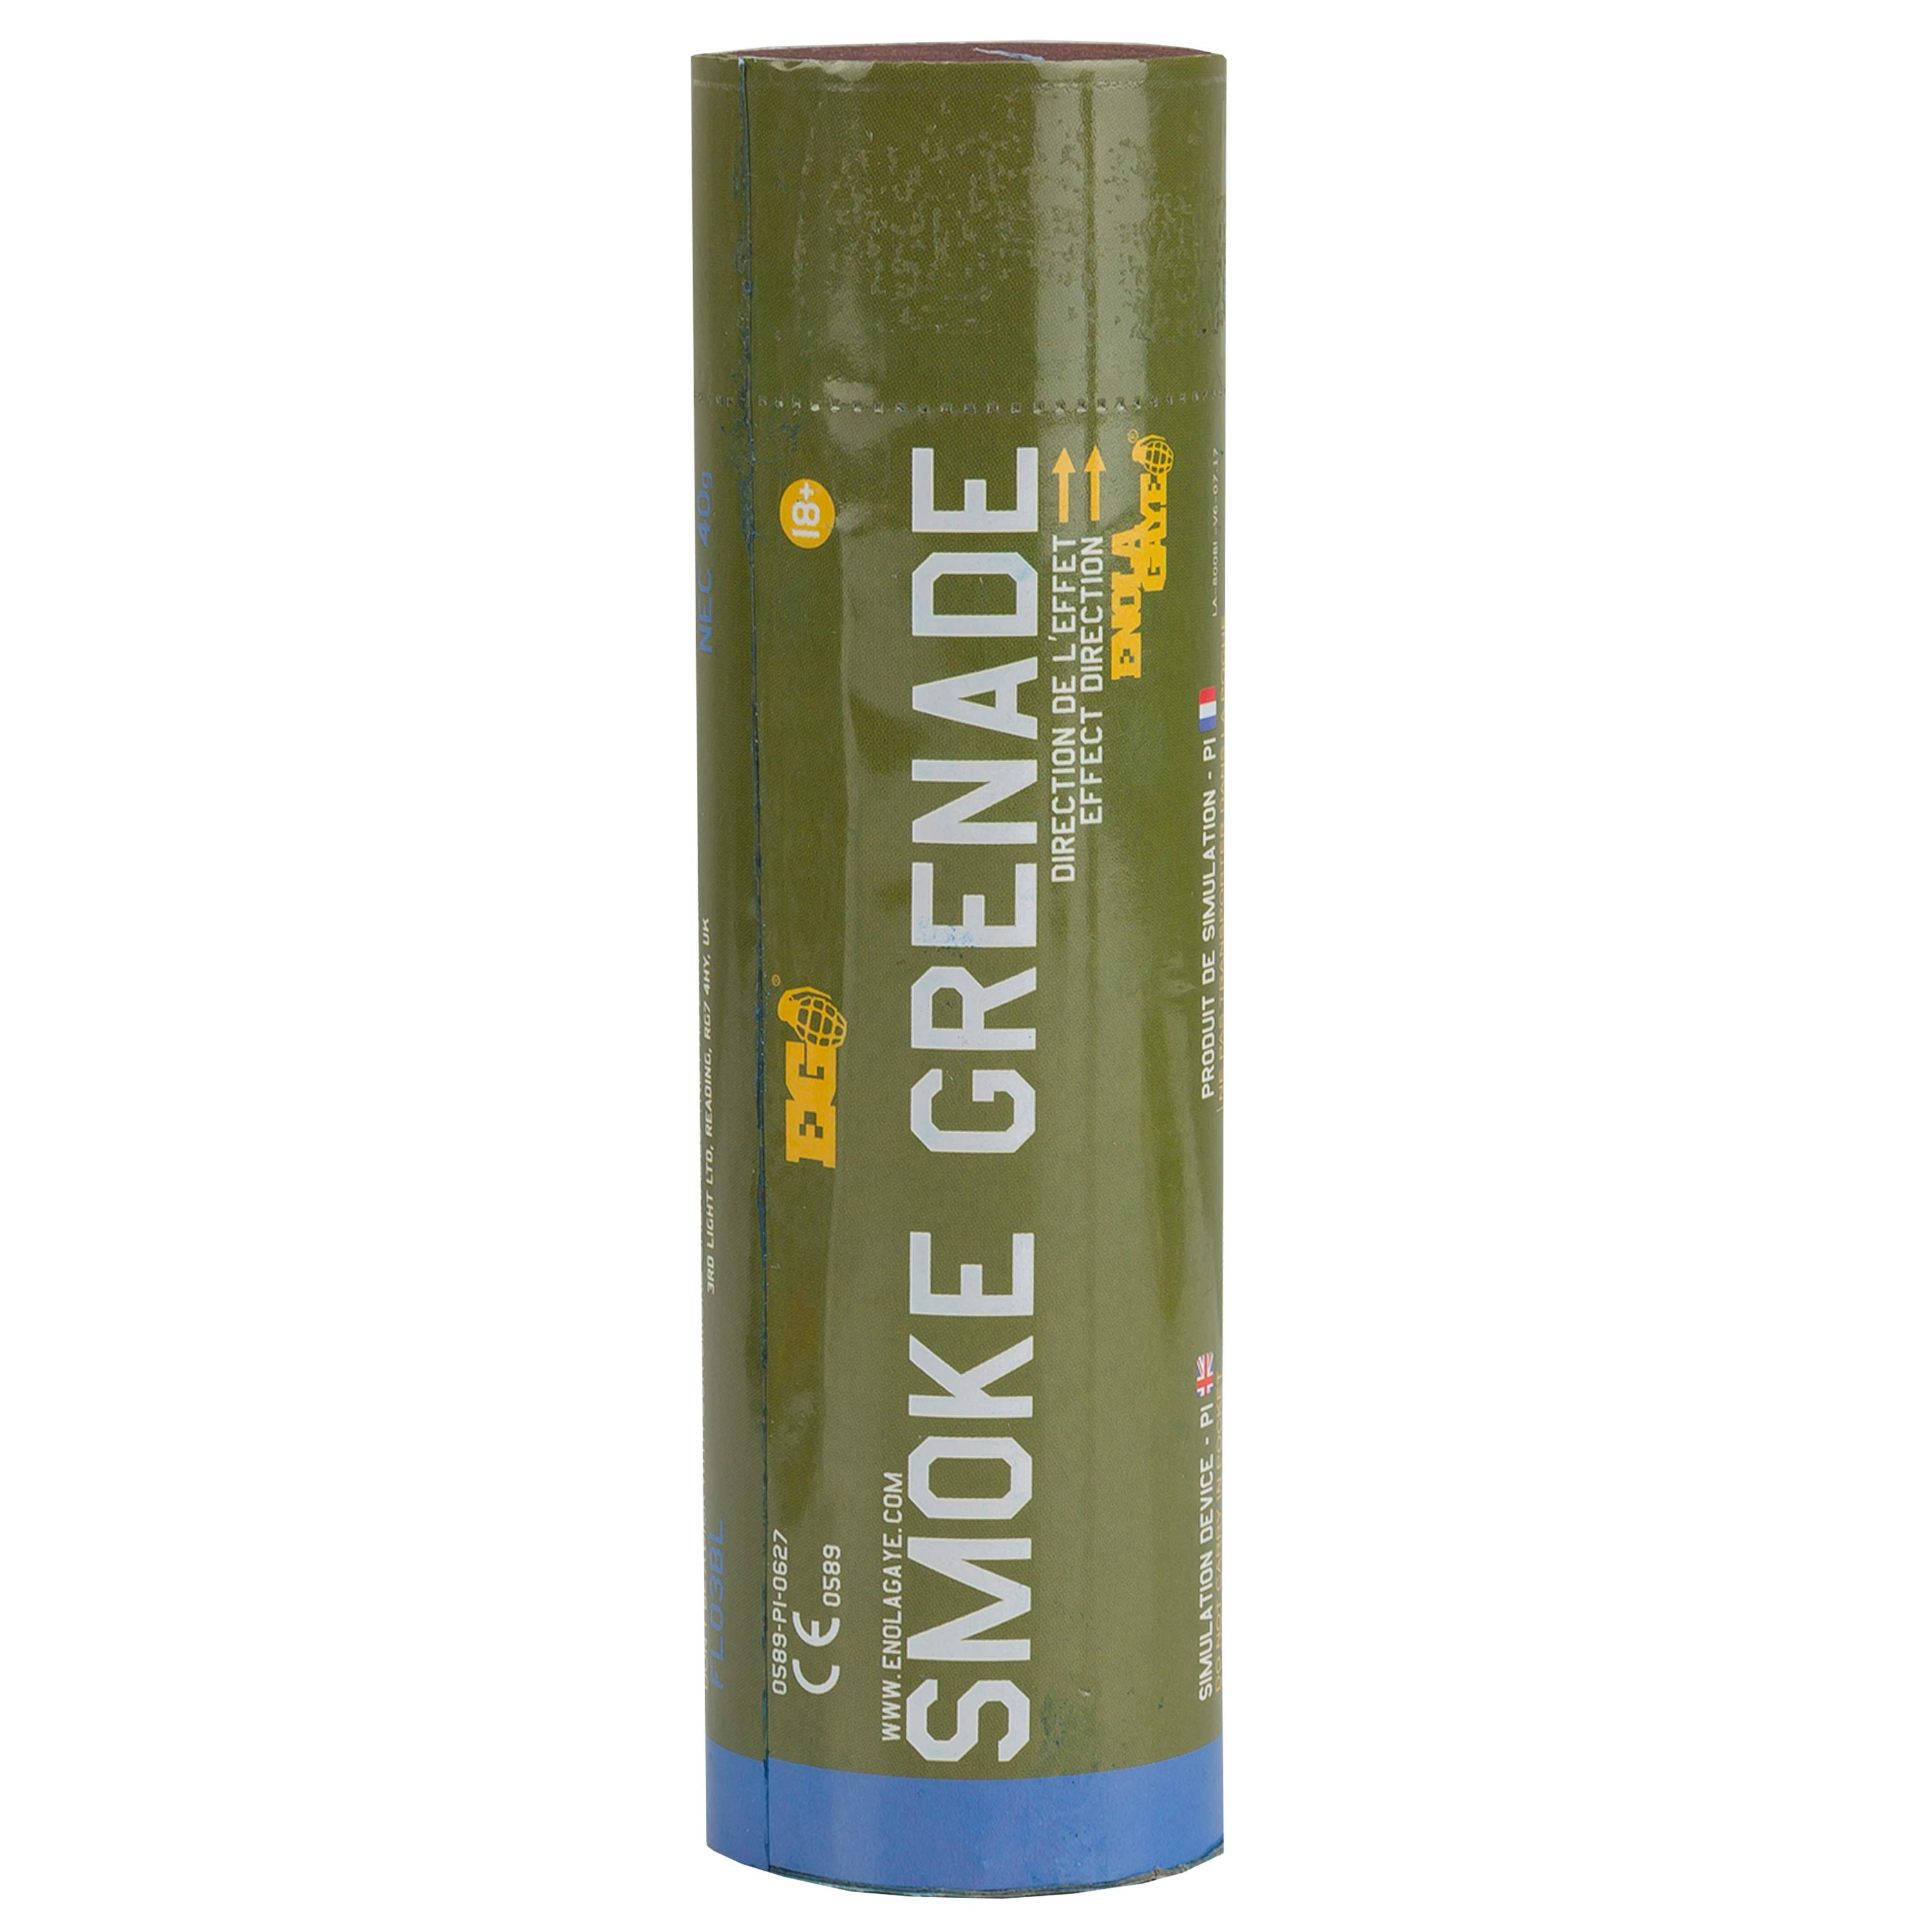 Smoke-X Rauchgranate SX-2 Friction blau